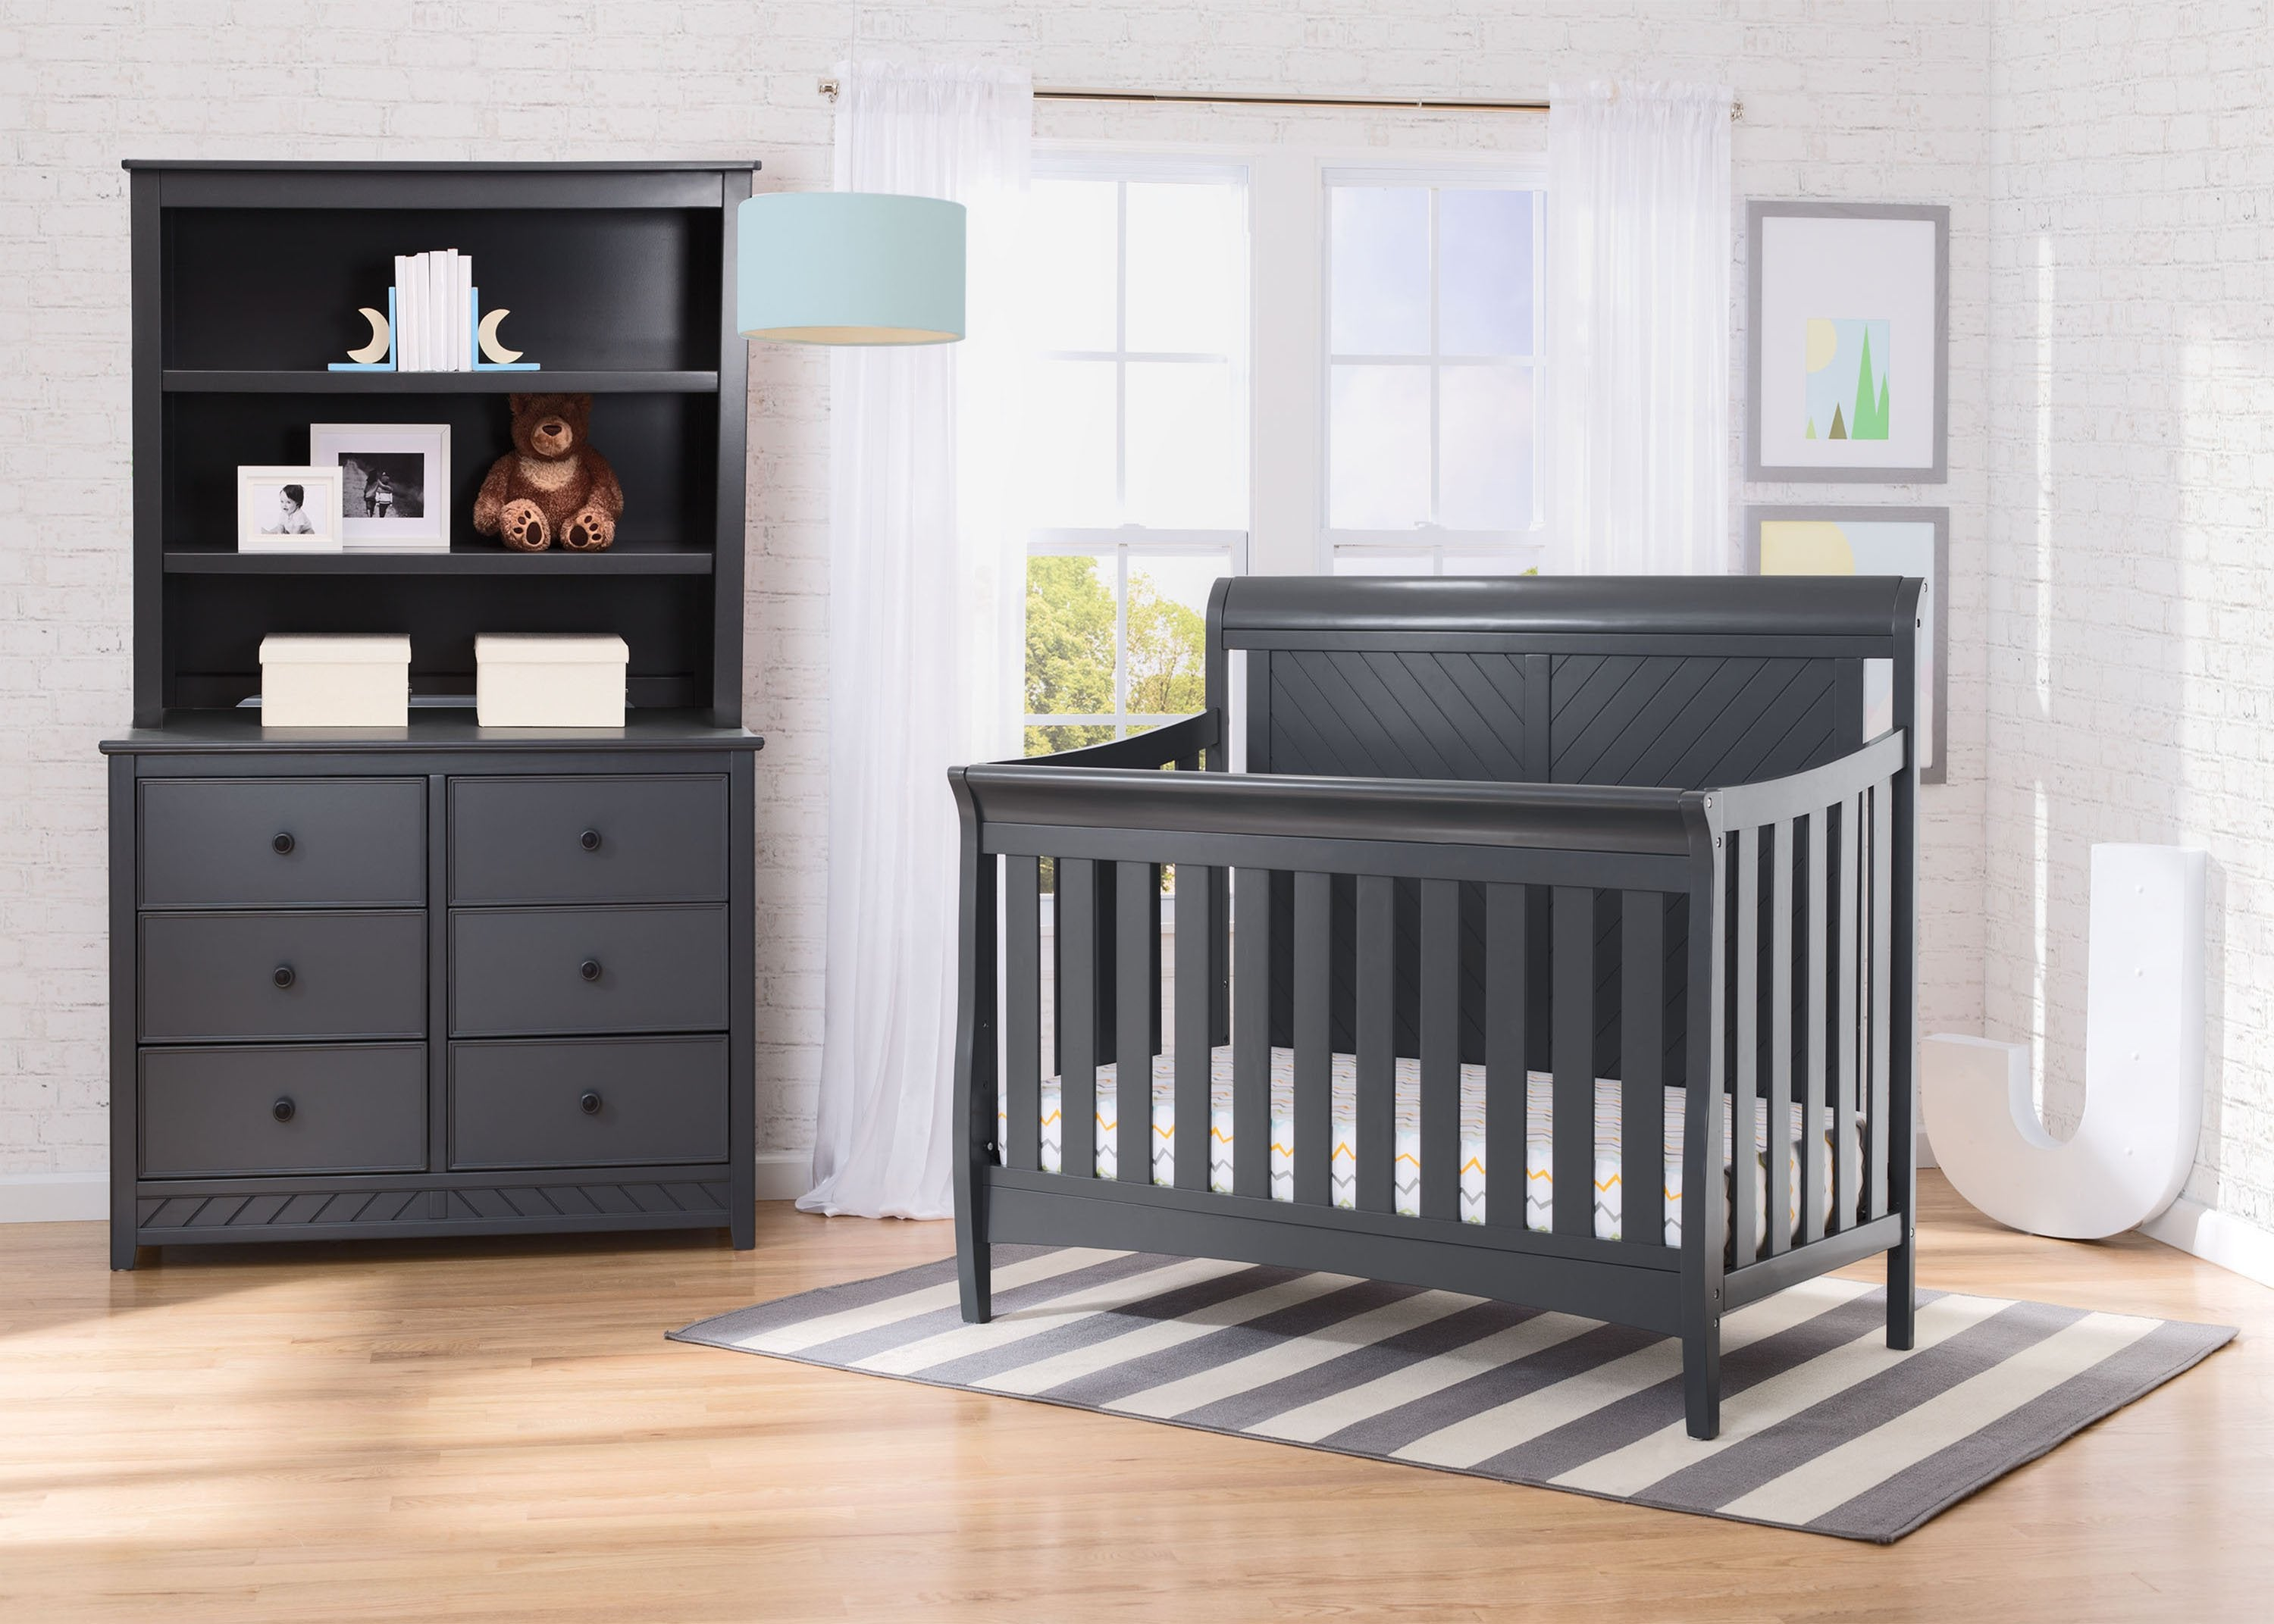 s disney baby delta cribs furniture convertible bru crib featuring from in dream princess dreams magical